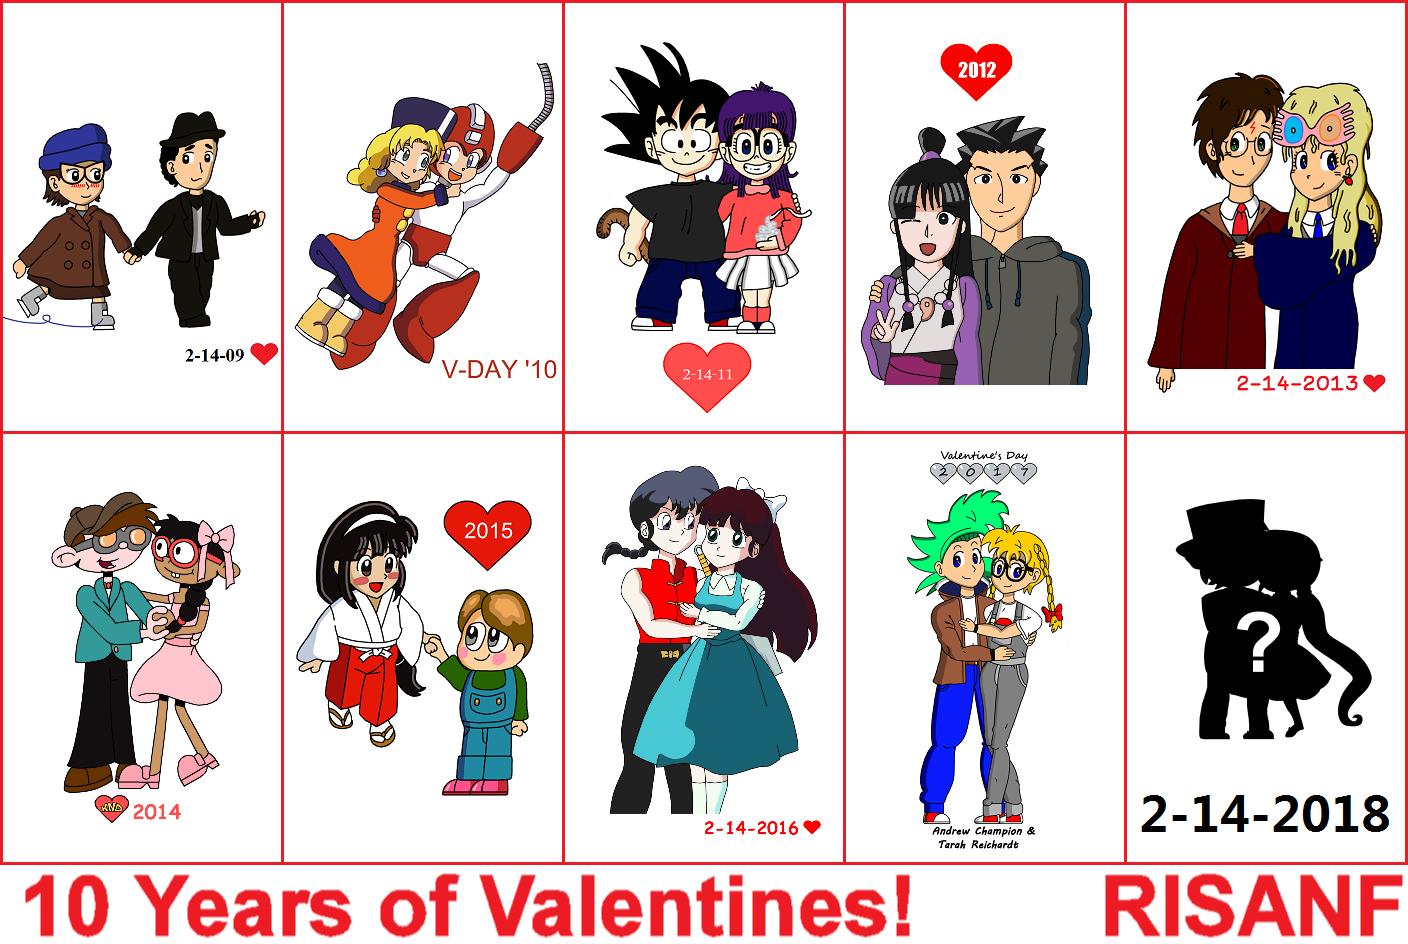 10 Years of Valentines! by RisanF